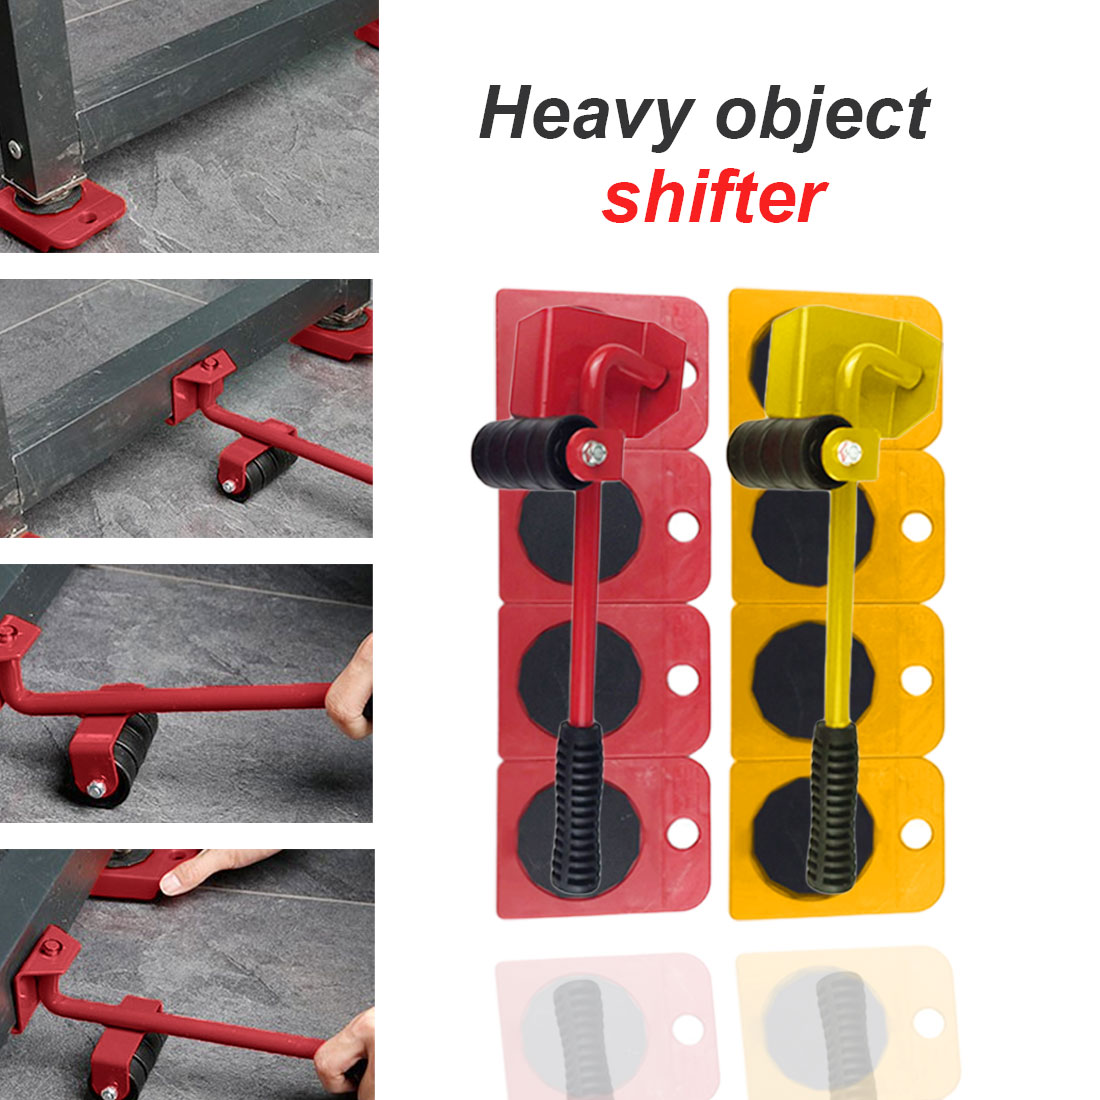 Herramientas Heavy Object Shifter Furniture Shifter Five-piece Mover Heavy Object Mobile Tool Mover Household Hand Tool Se